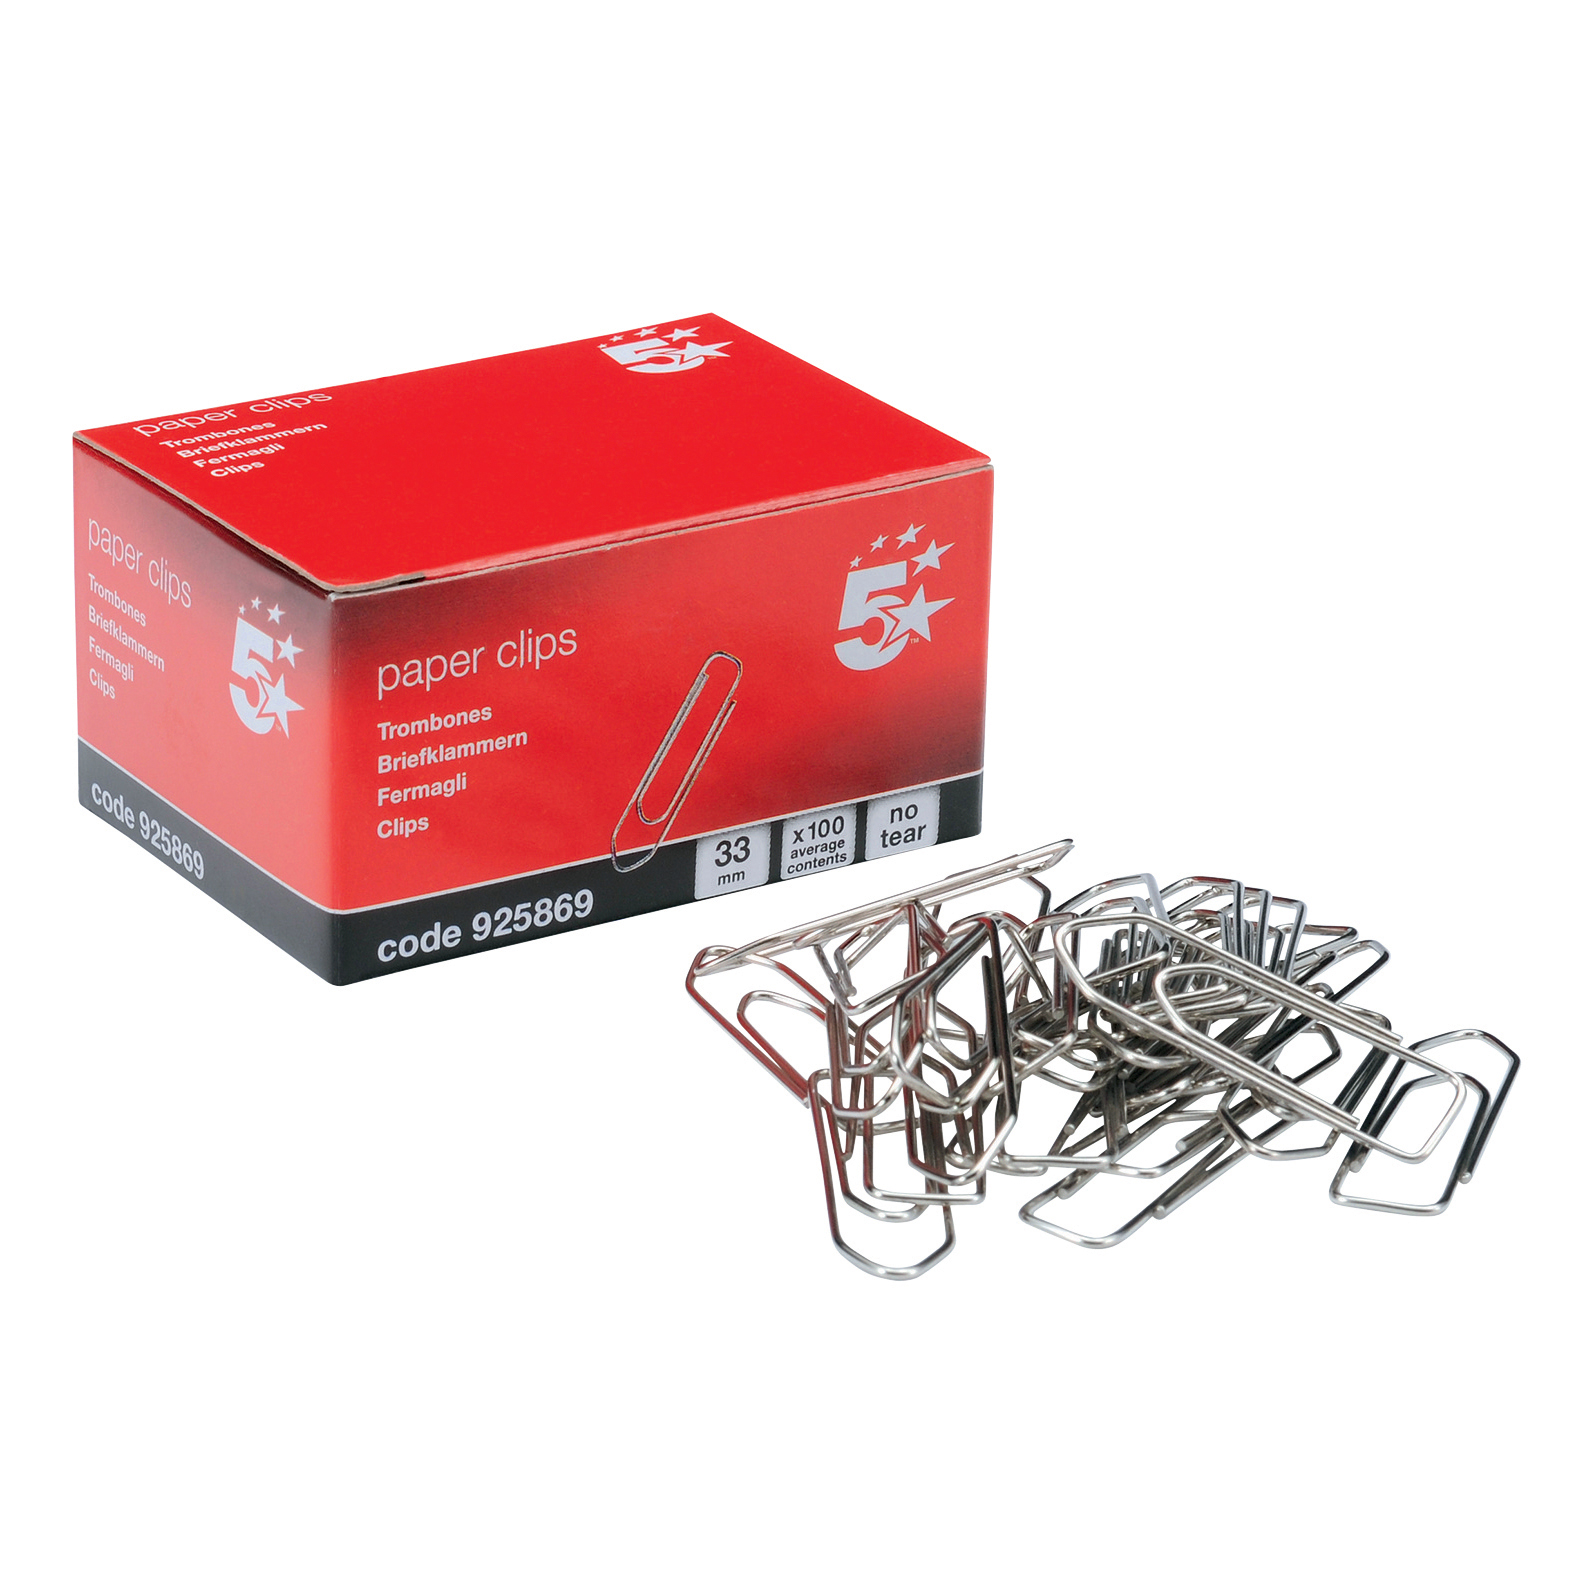 5 Star Office Giant Paperclips Metal Extra Large Length